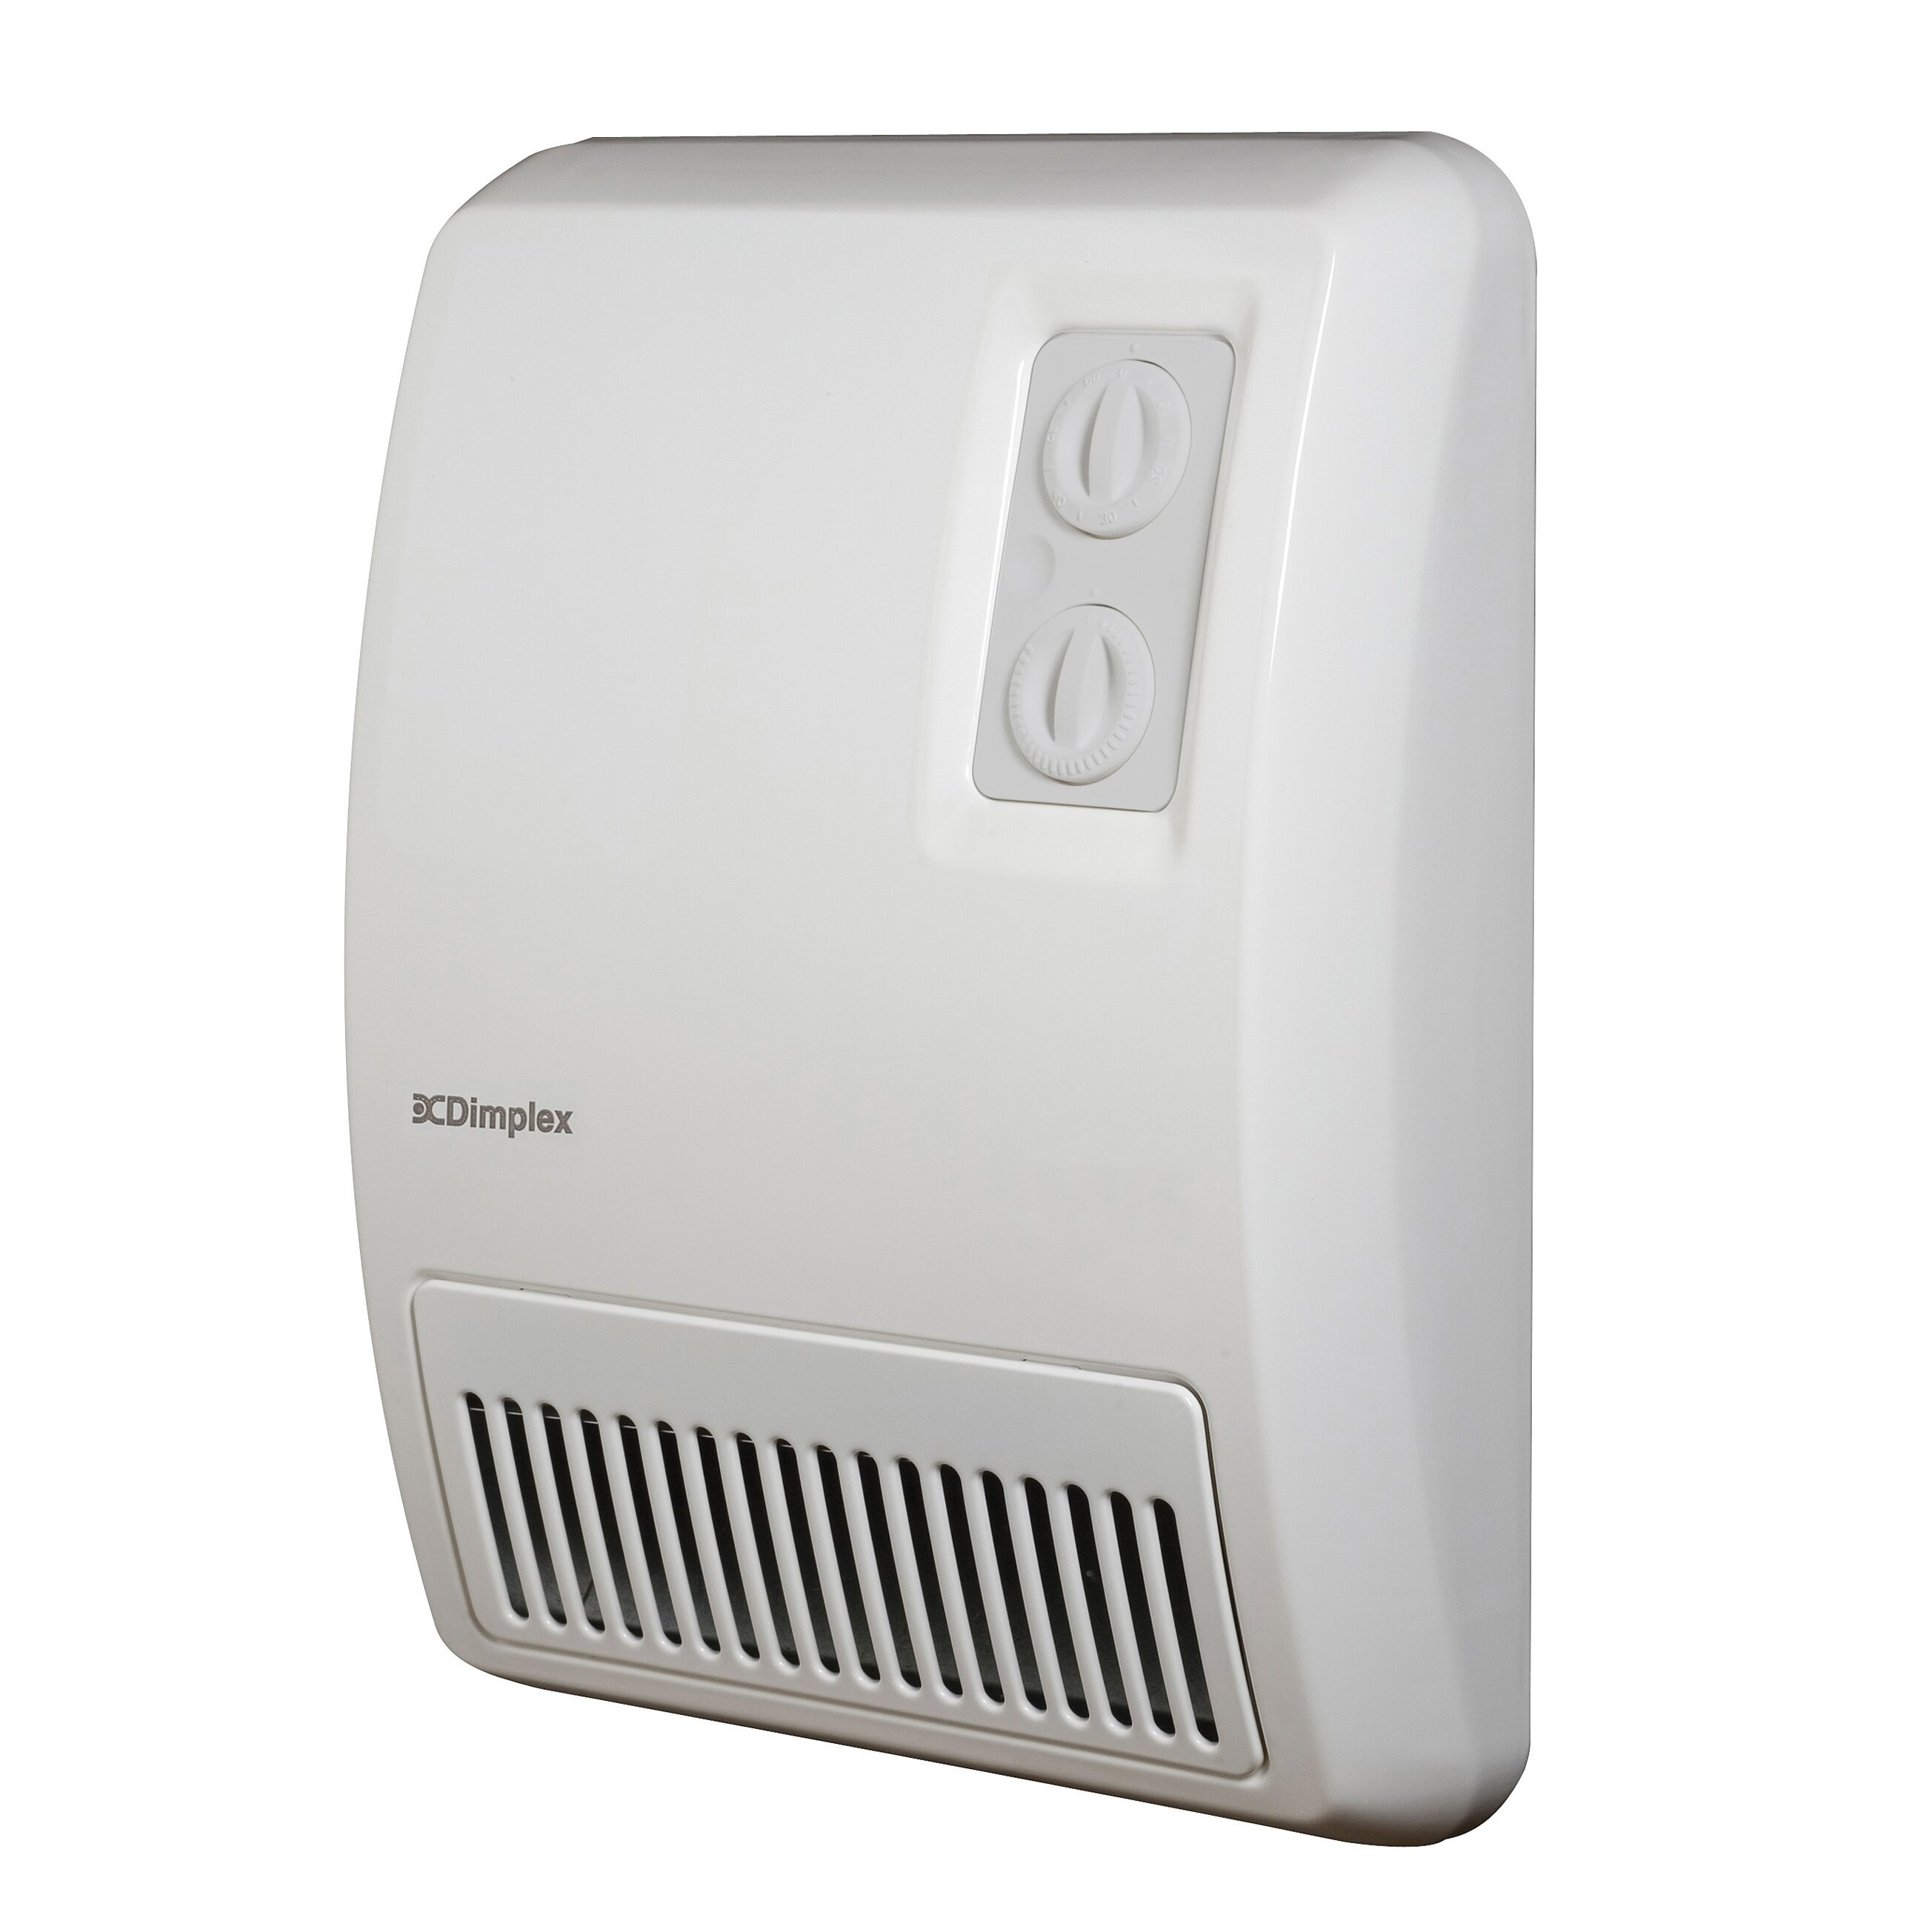 Dimplex 3 413 btu wall insert electric fan heater - Wall mounted electric bathroom heaters ...